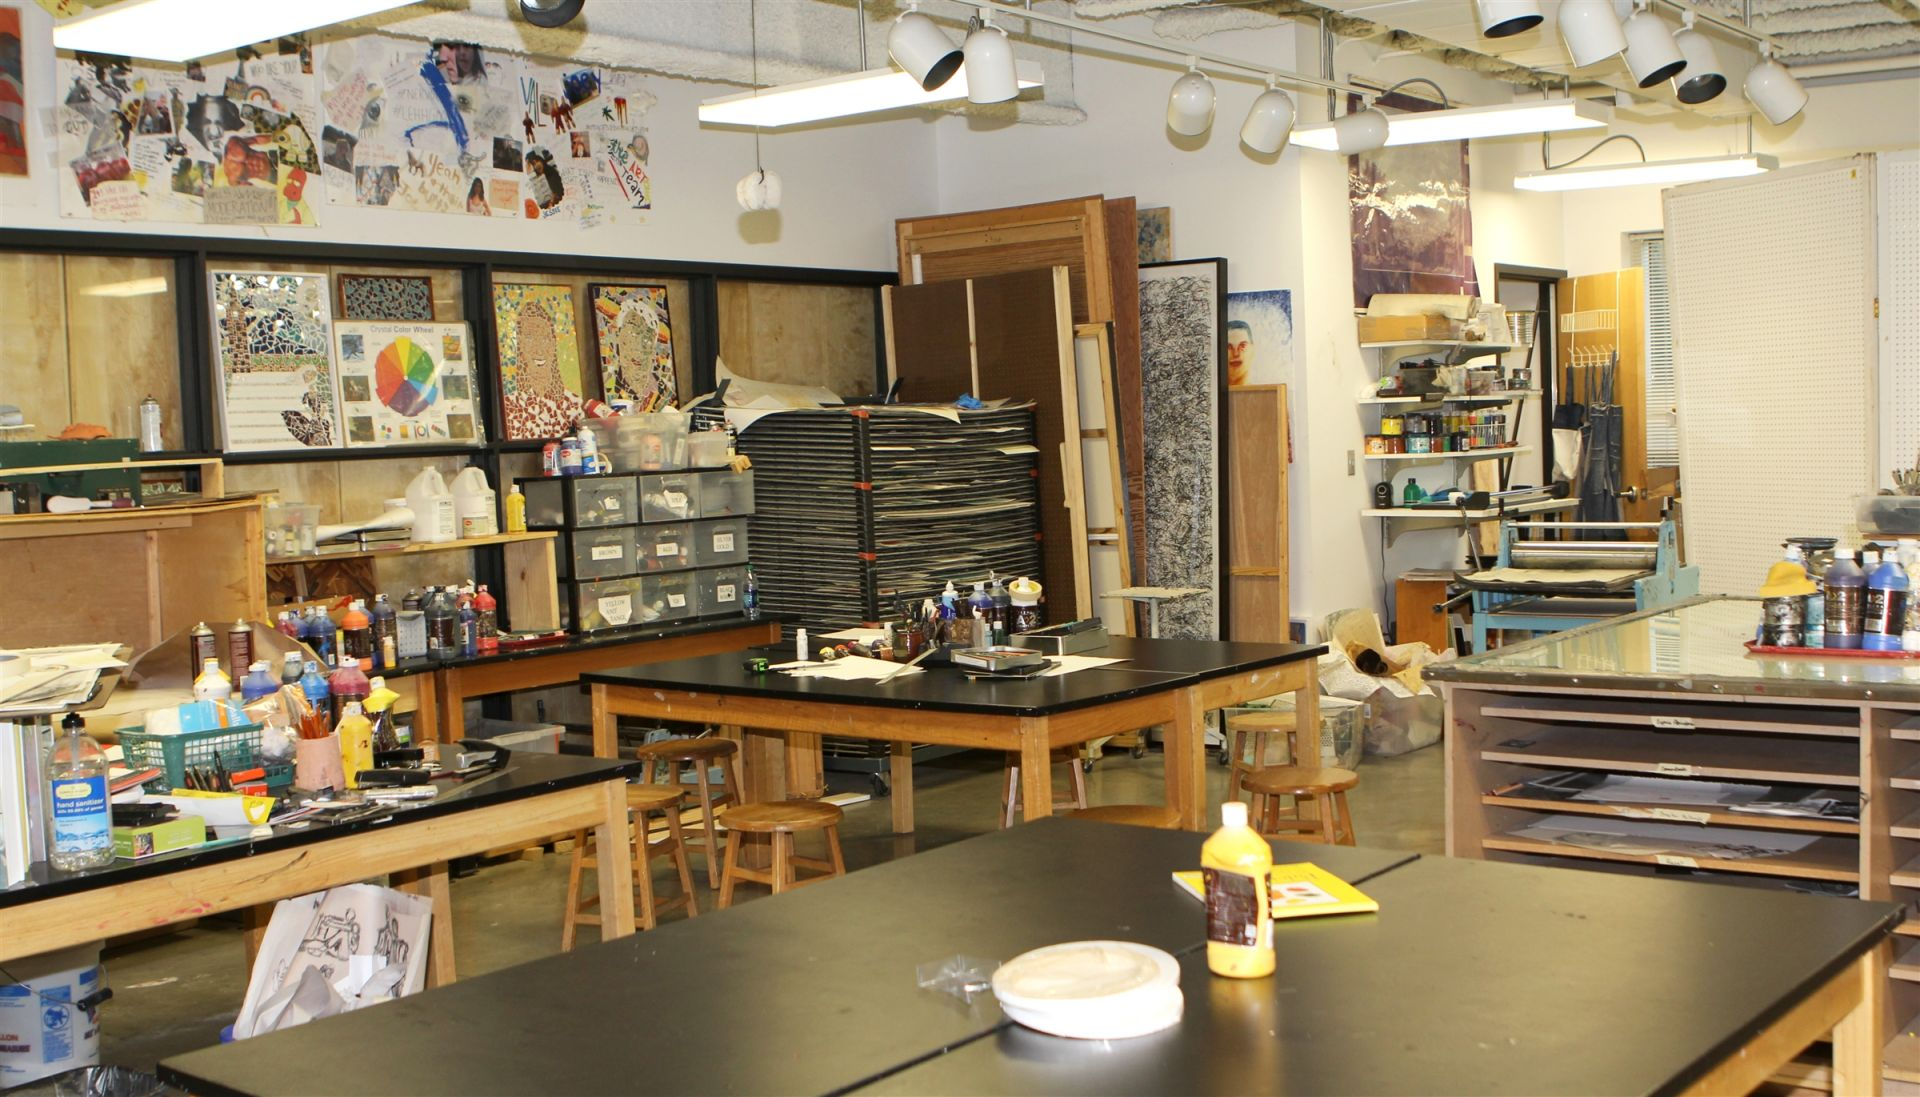 Upper School Painting/Drawing Studio